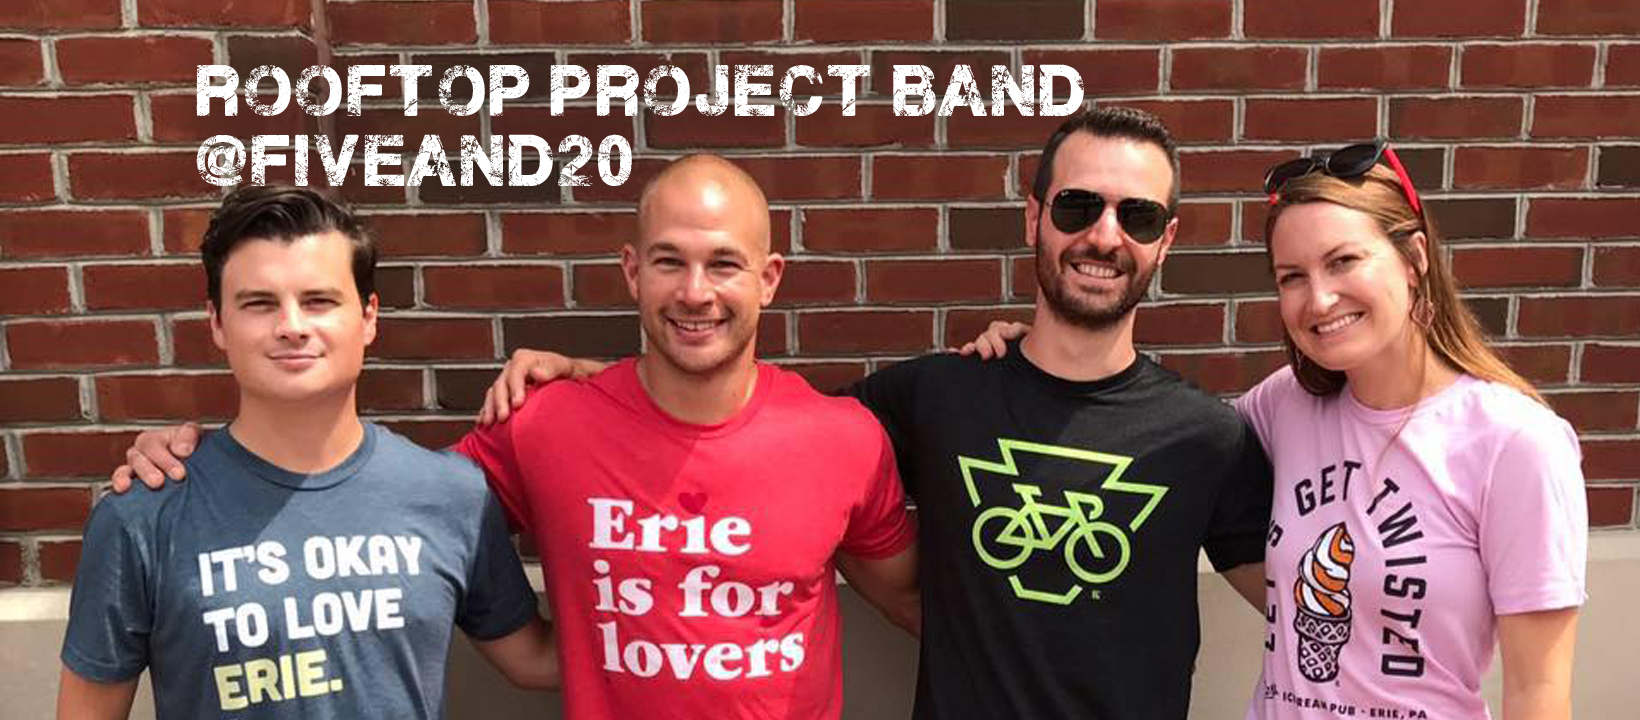 The Rooftop Project Band Sunday Sesh at Five & 20